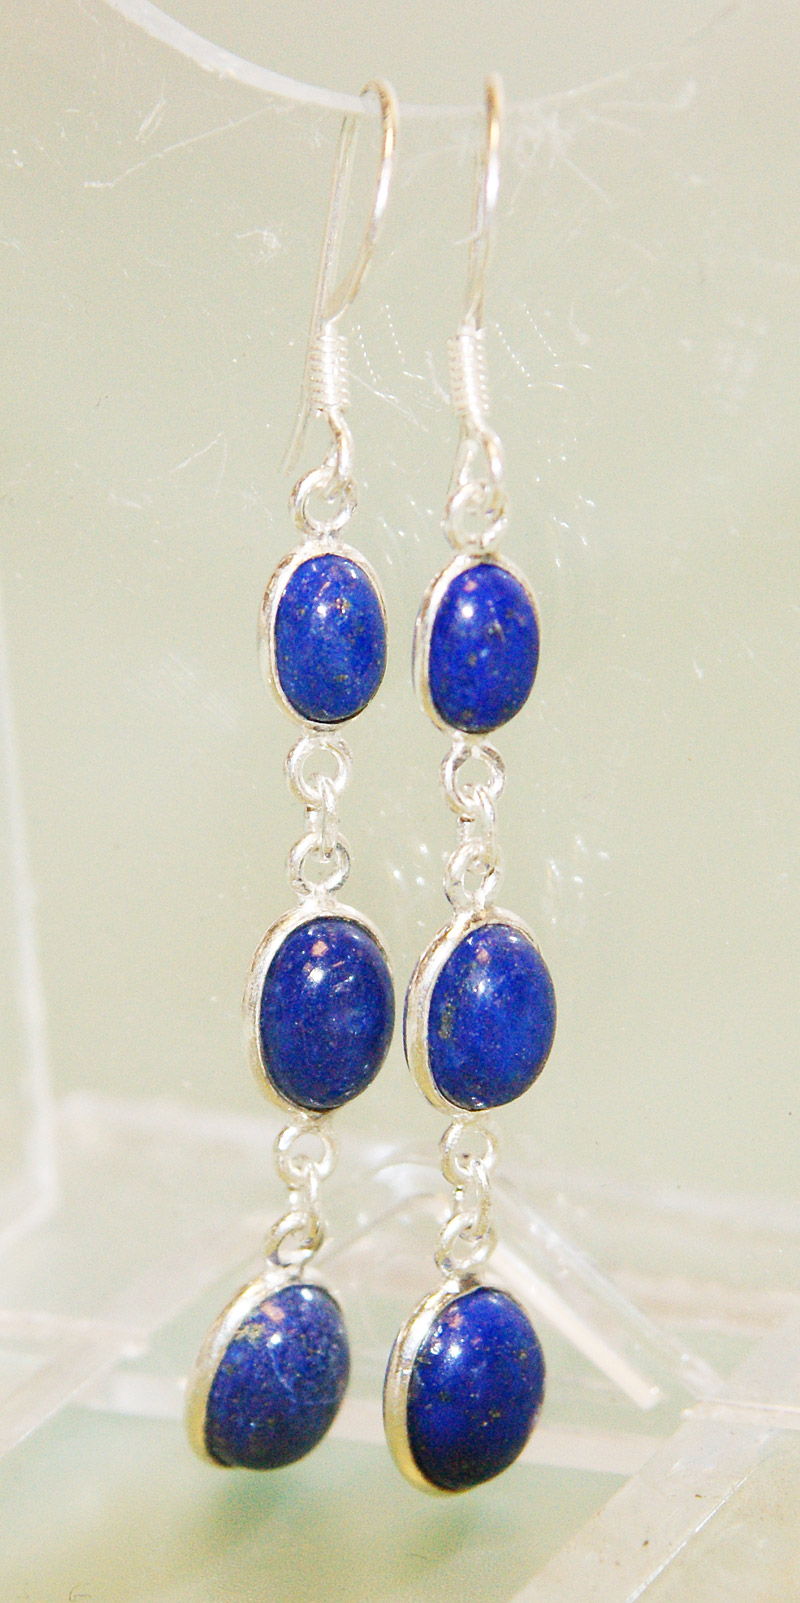 lazuli today shipping earrings handcrafted clarity free watches overstock true product jewelry lapis sterling india silver